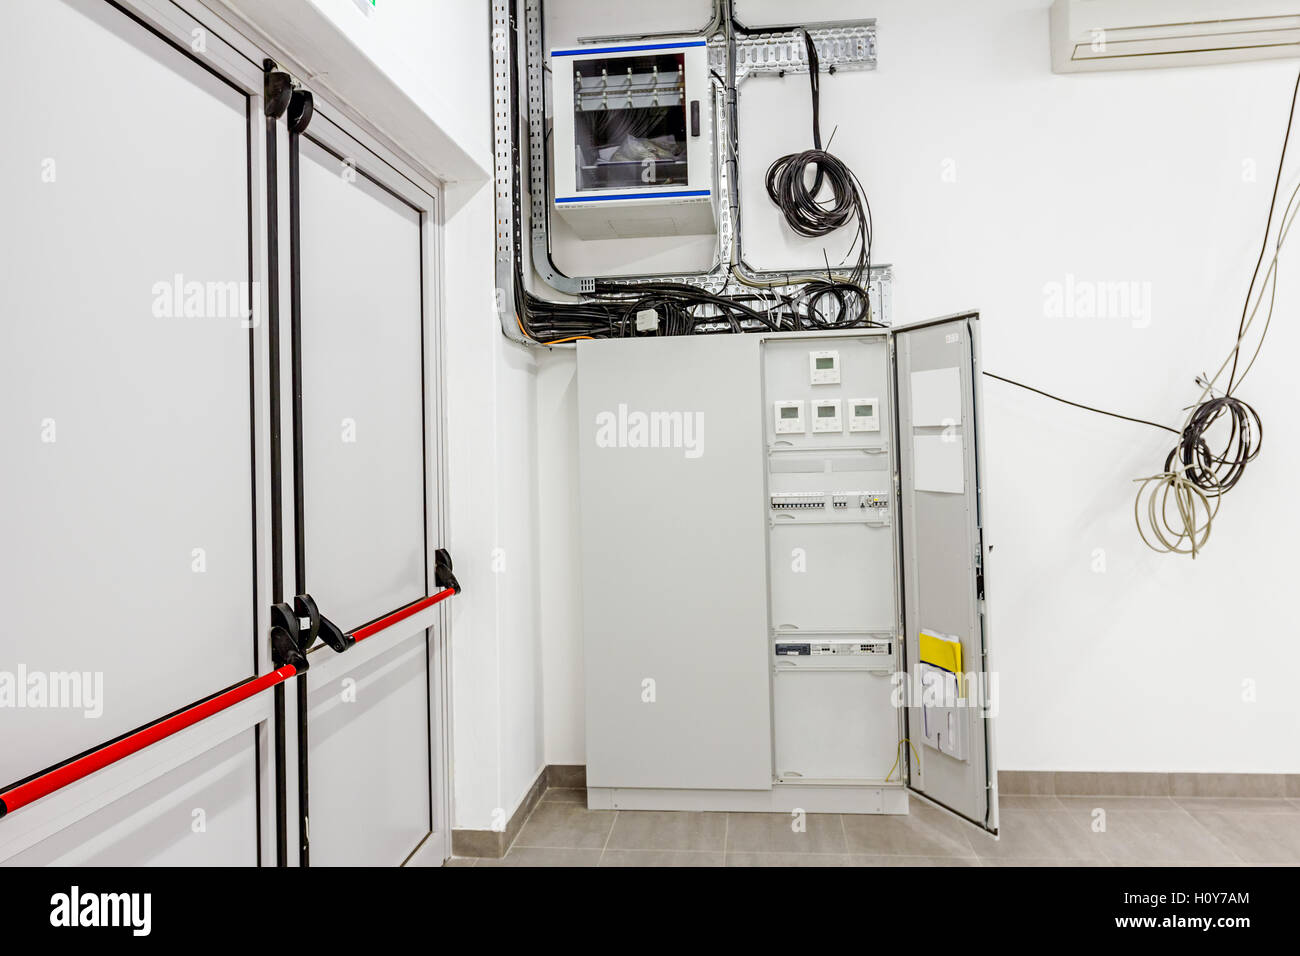 home circuit breaker box stockfotos home circuit breaker box bilder alamy. Black Bedroom Furniture Sets. Home Design Ideas